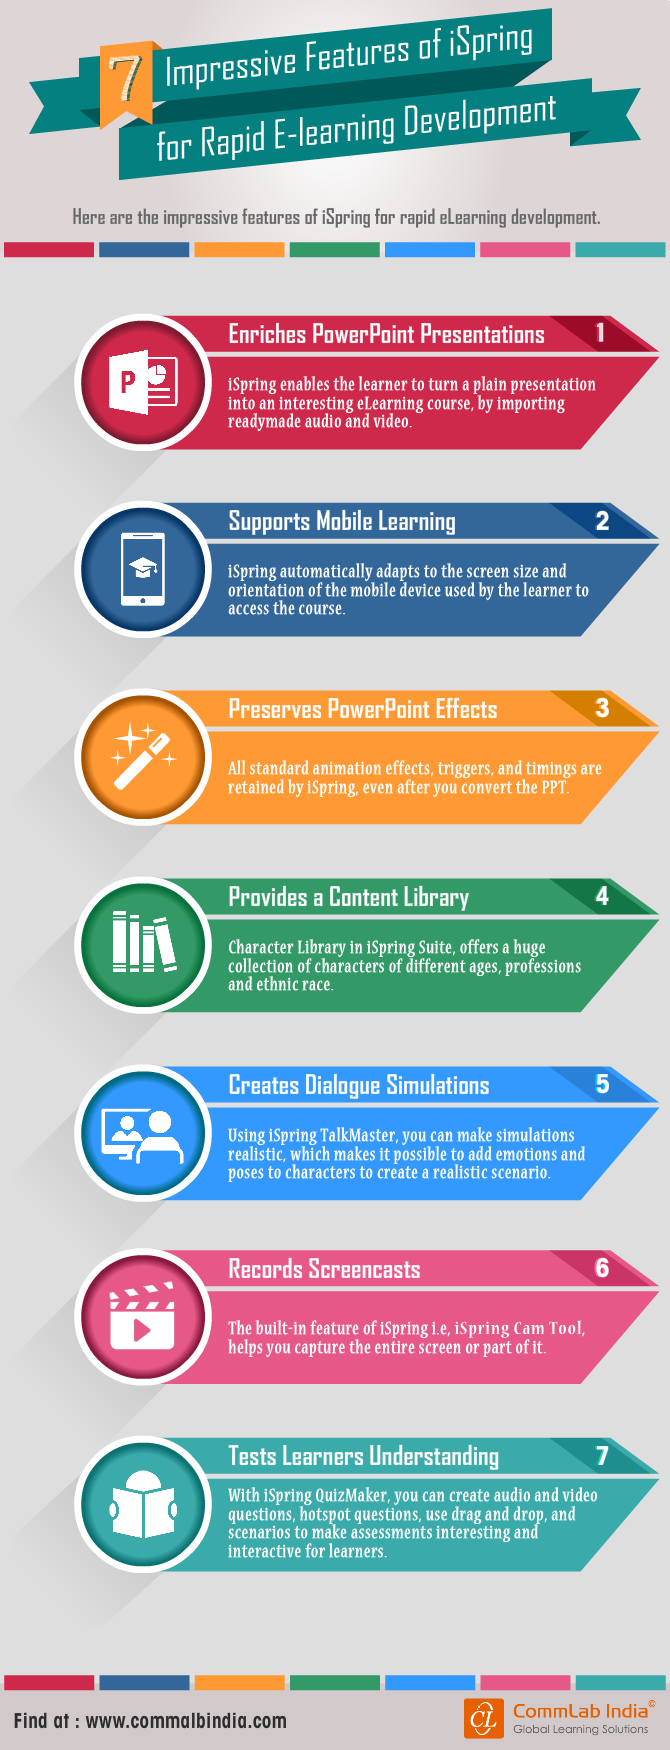 7 Impressive Features of iSpring for Rapid E-learning Development [Infographic]